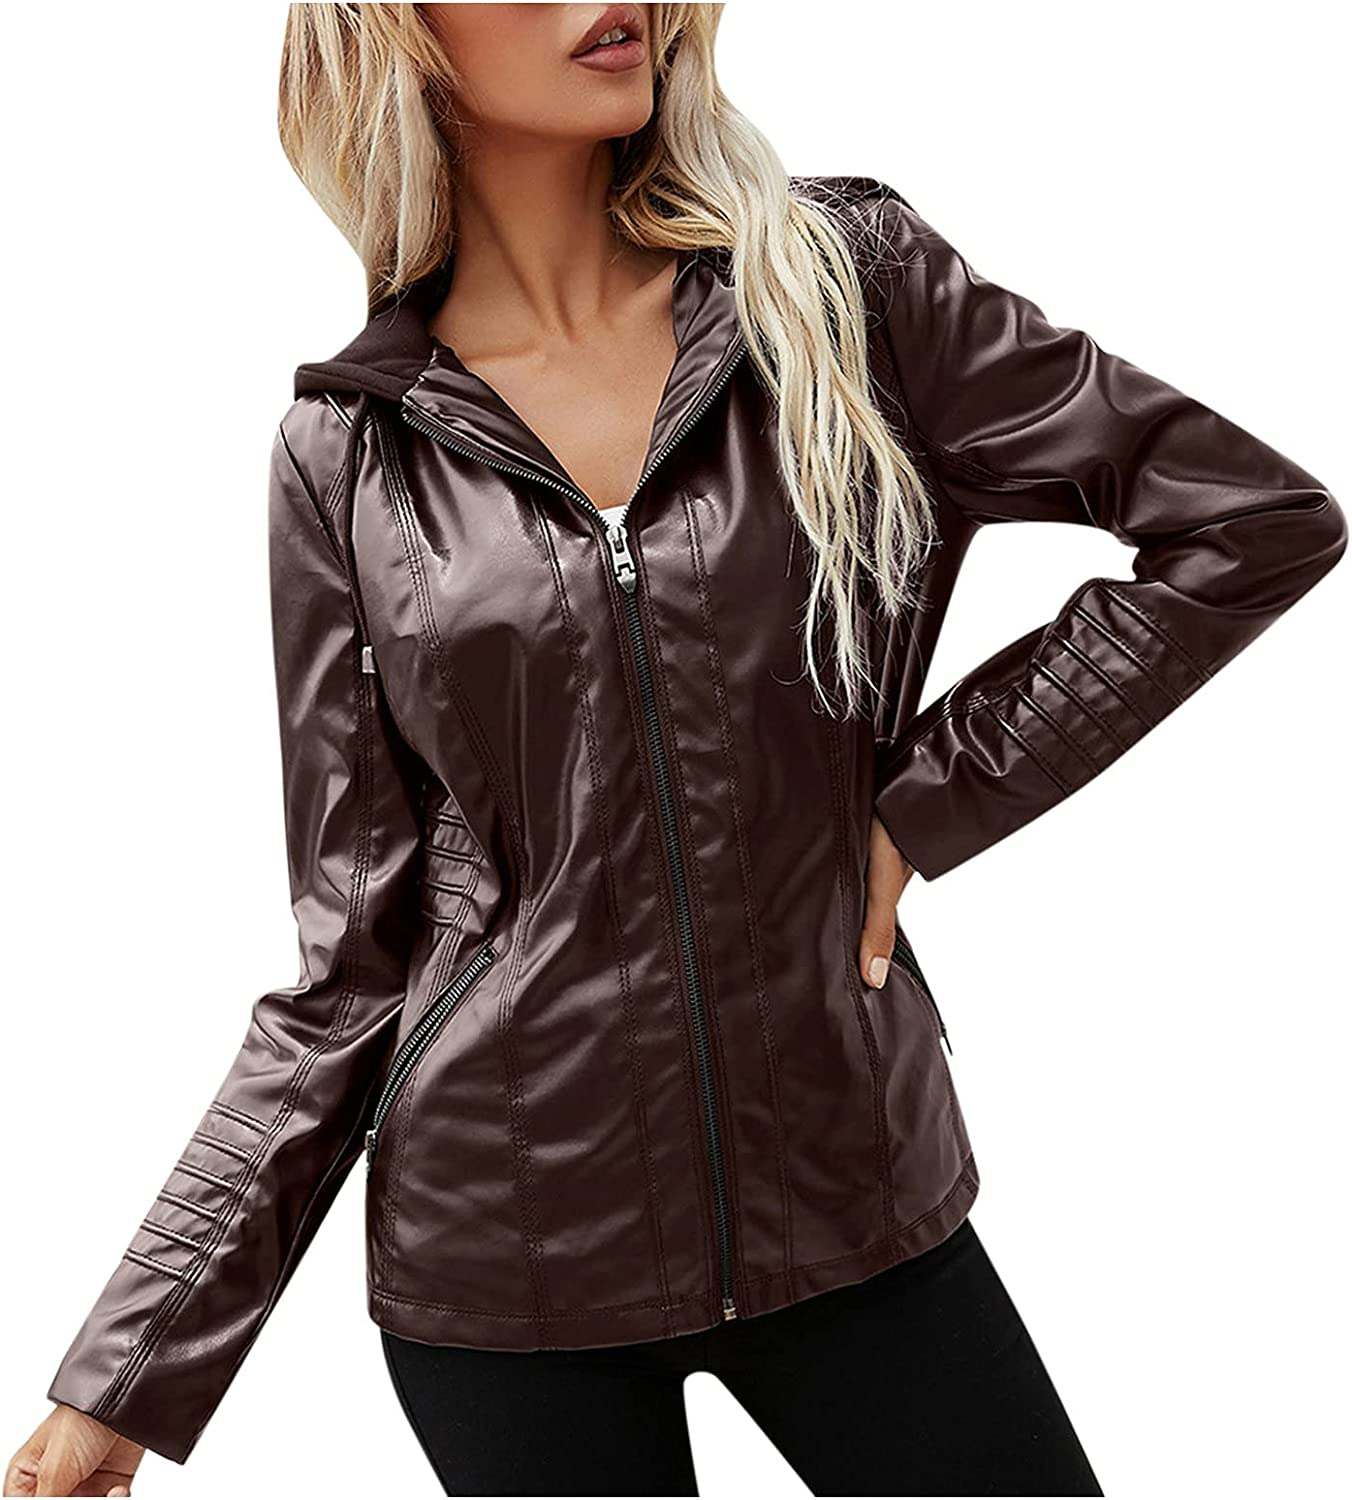 Xinantime Women's Zipper Faux Leather Jacket Motorcycle Basic Hoodies Coat Ladies Pure Color Biker Outwear with Pocket